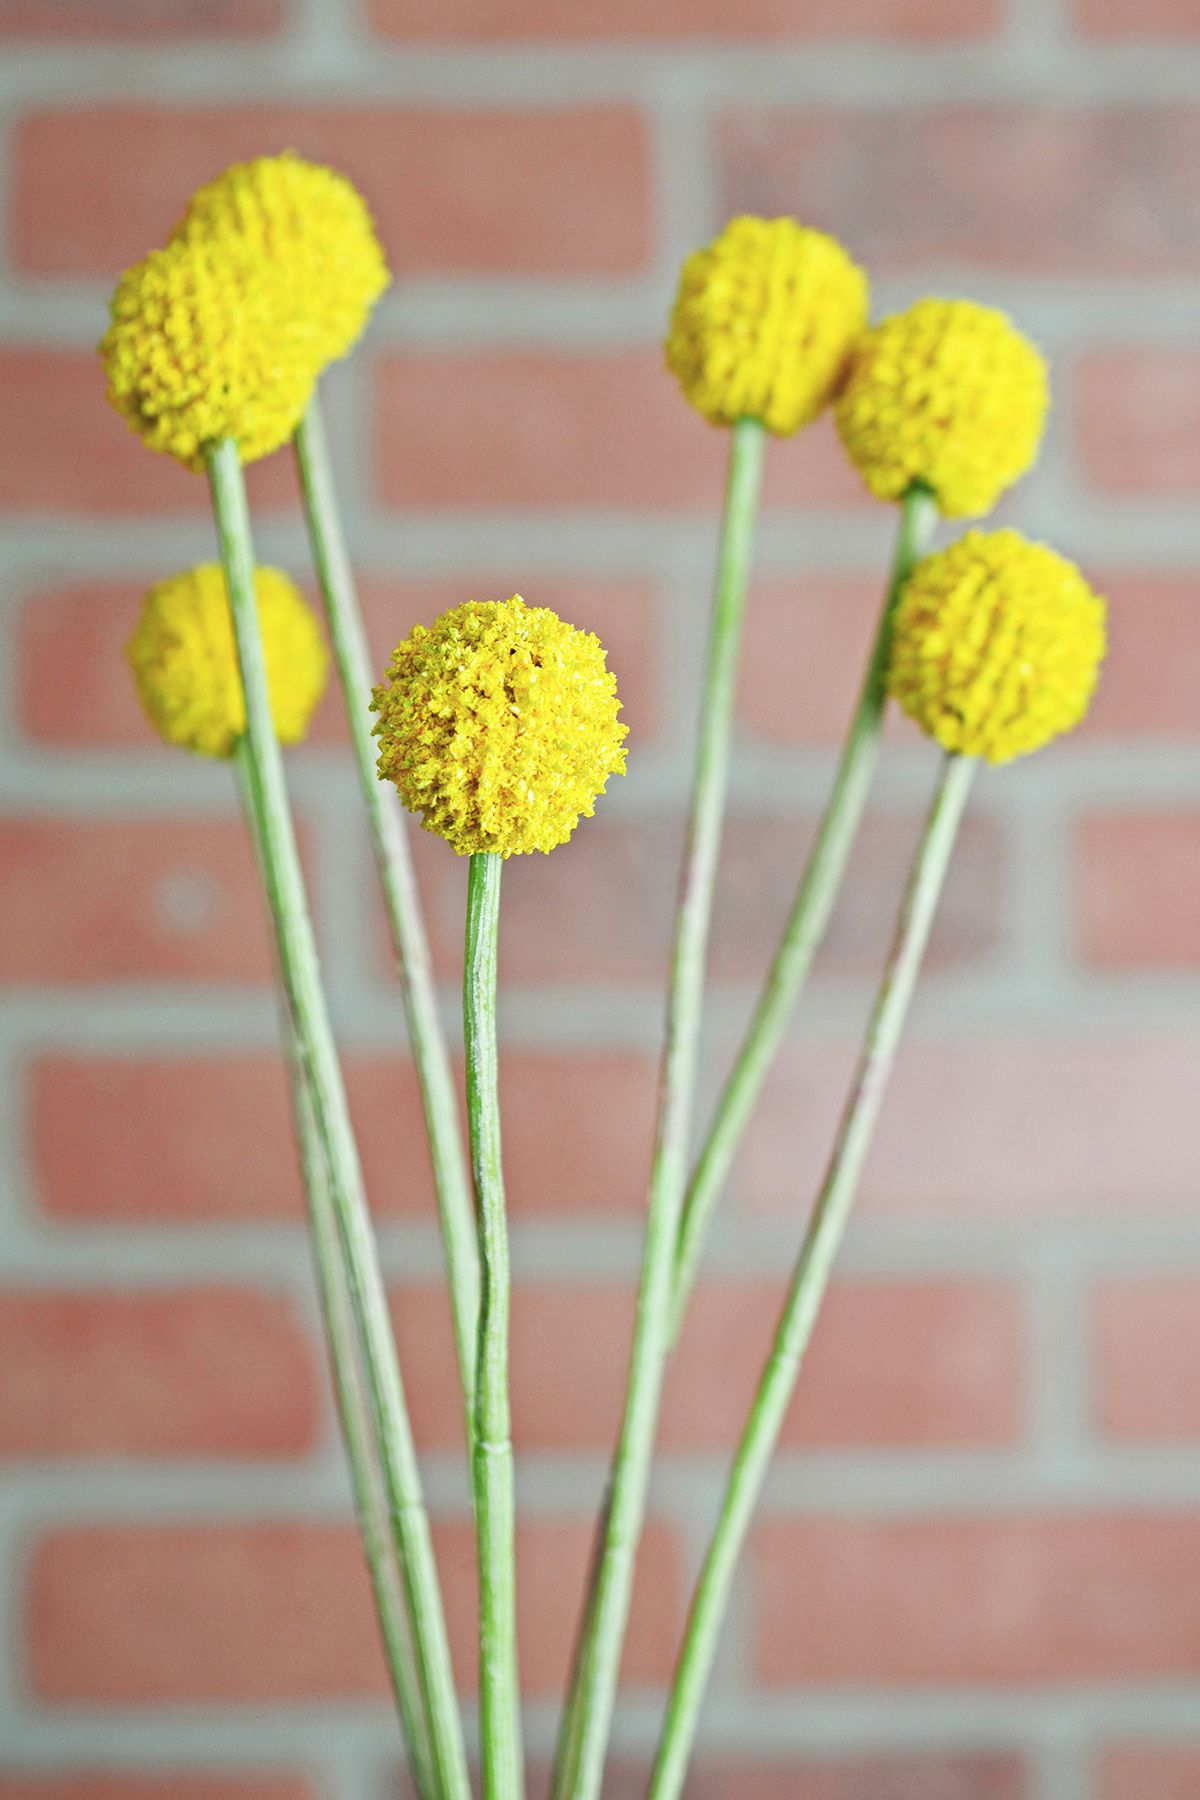 24 Silk Billy Button Craspedia Flower Spray Billy Buttons Flower Spray Flowers